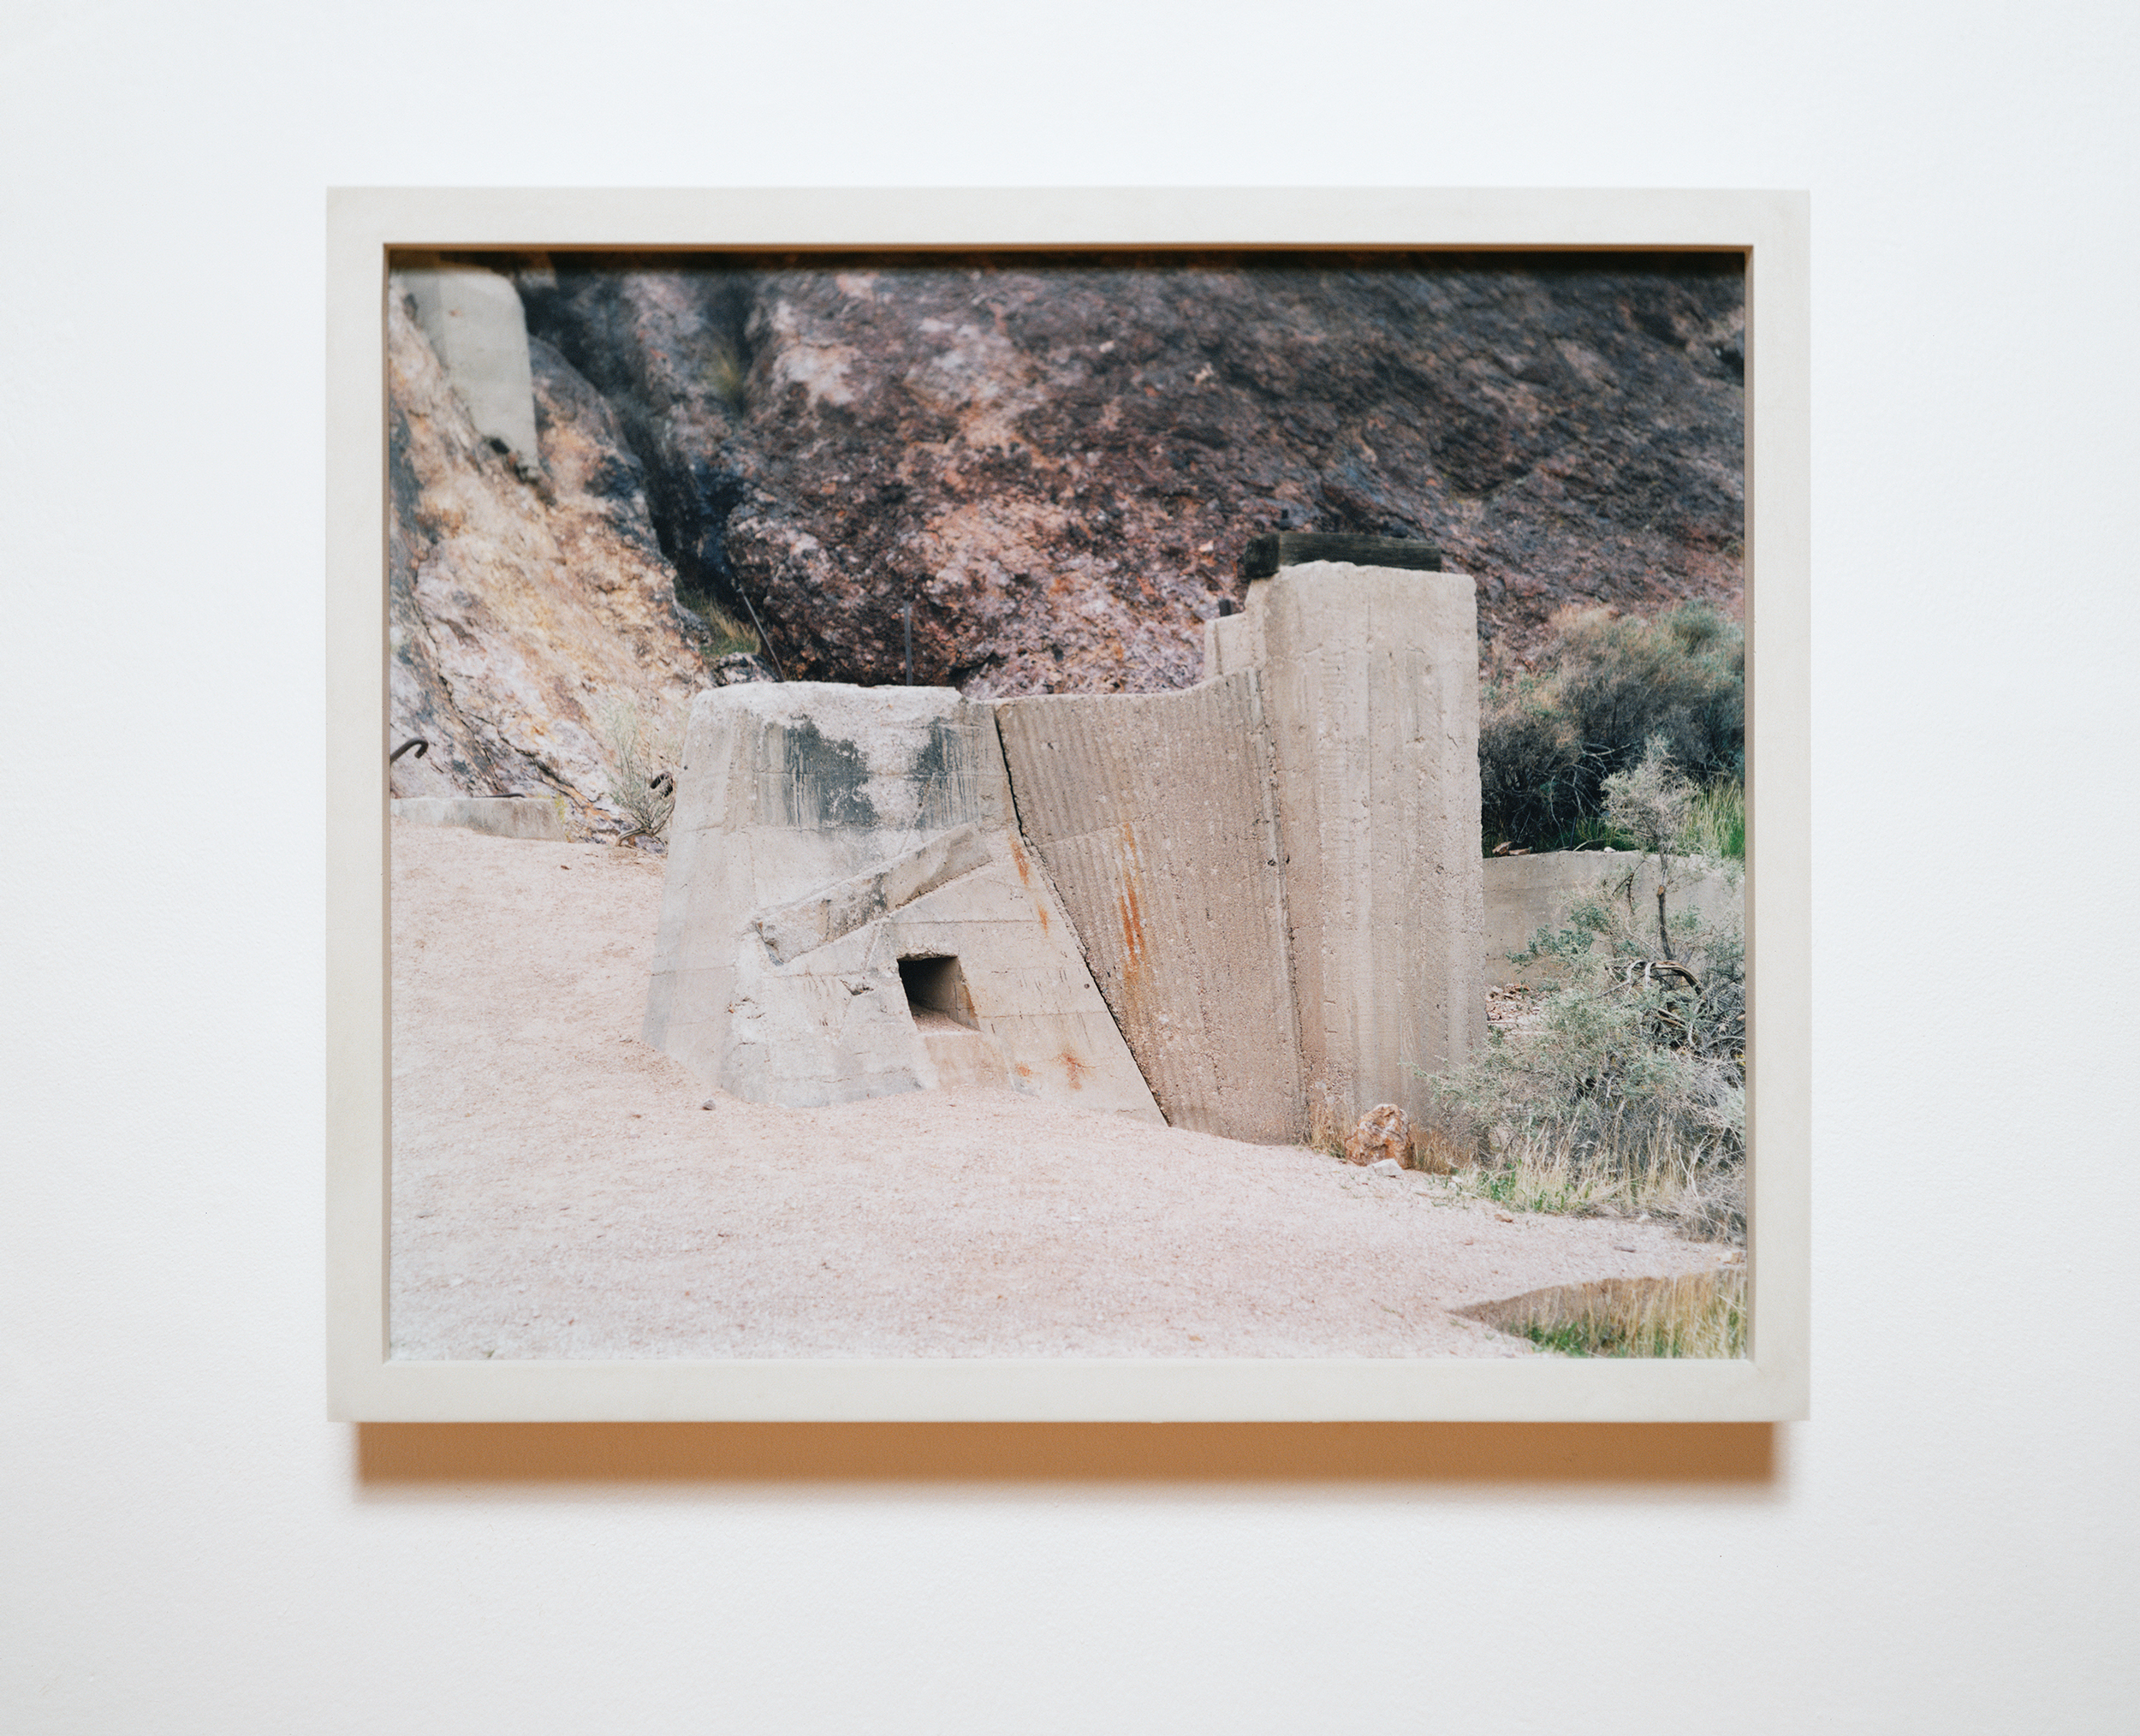 Recent Cures 2007 chromogenic print on acrylic with steel reinforced concrete frame